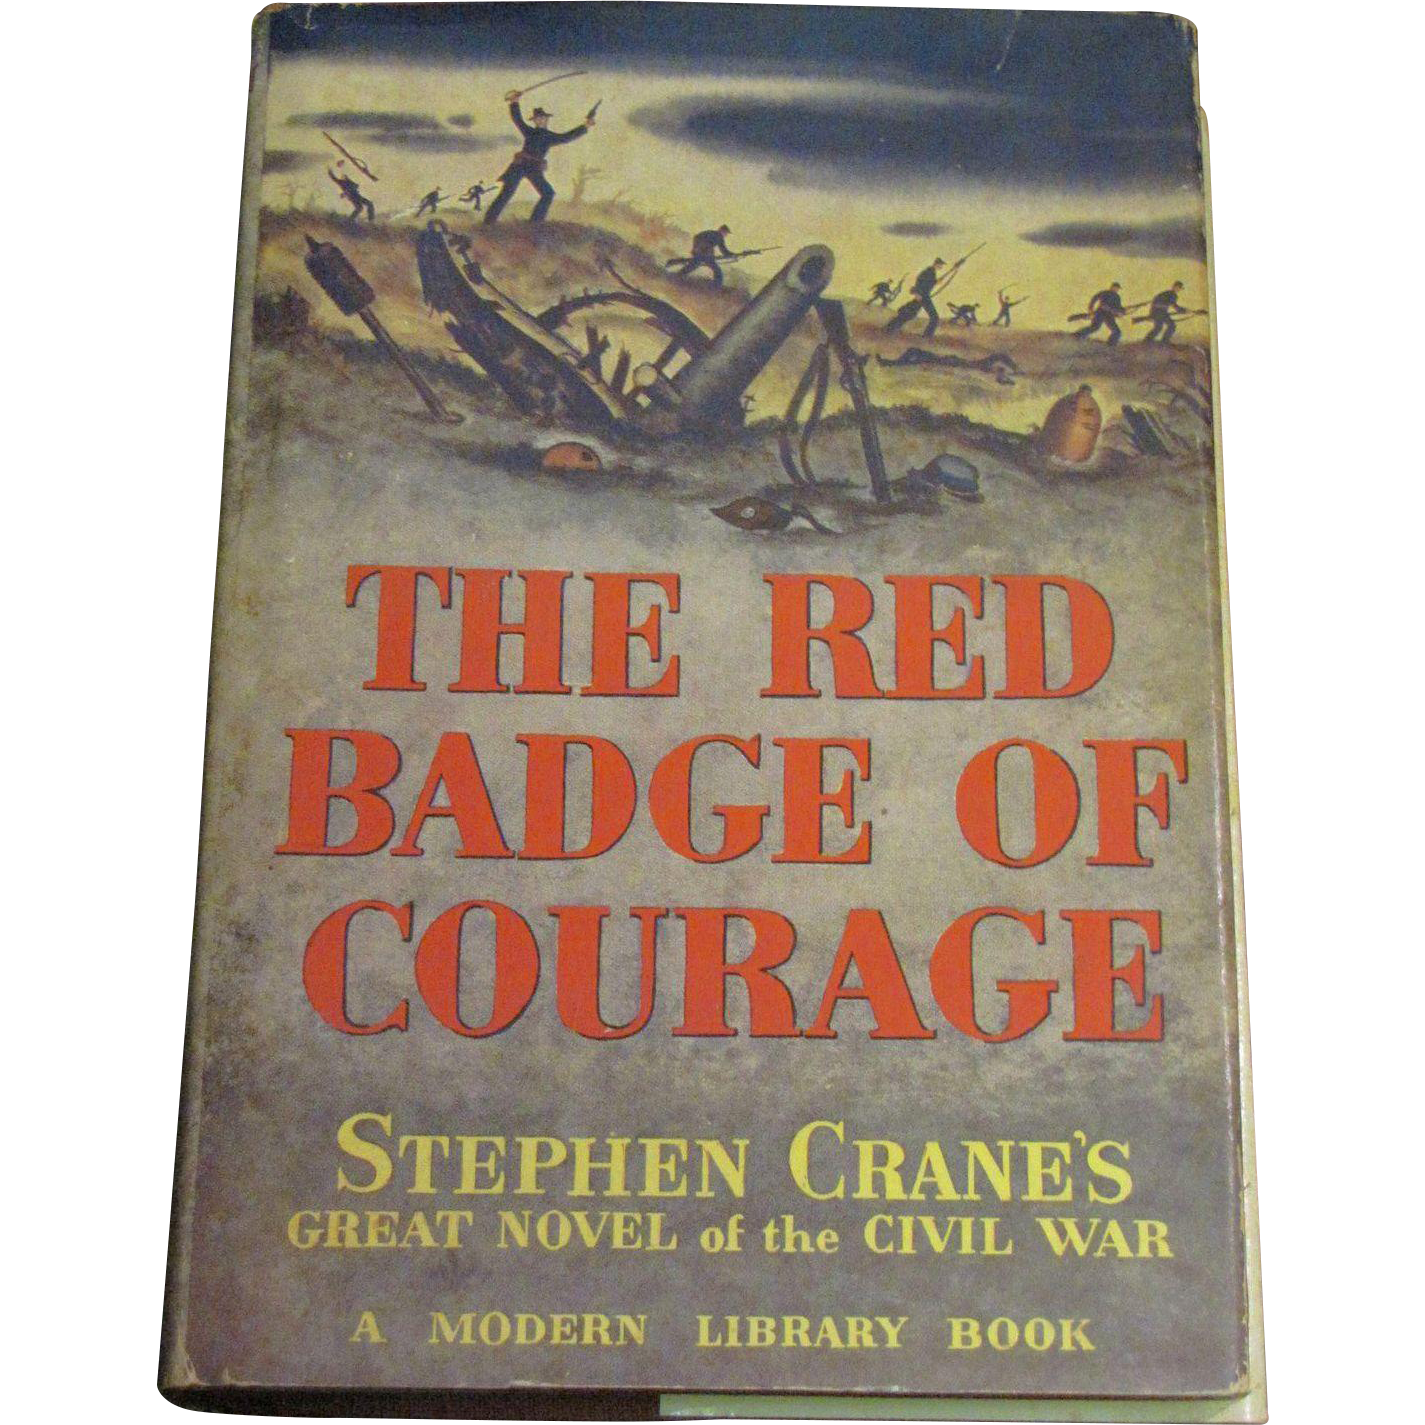 an analysis of the literary techniques in the red badge of courage a novel by stephen crane The red badge of courage: biography: stephen crane, free study guides and book notes including comprehensive chapter analysis, complete summary analysis, author biography information, character profiles, theme analysis, metaphor analysis, and top ten quotes on classic literature.